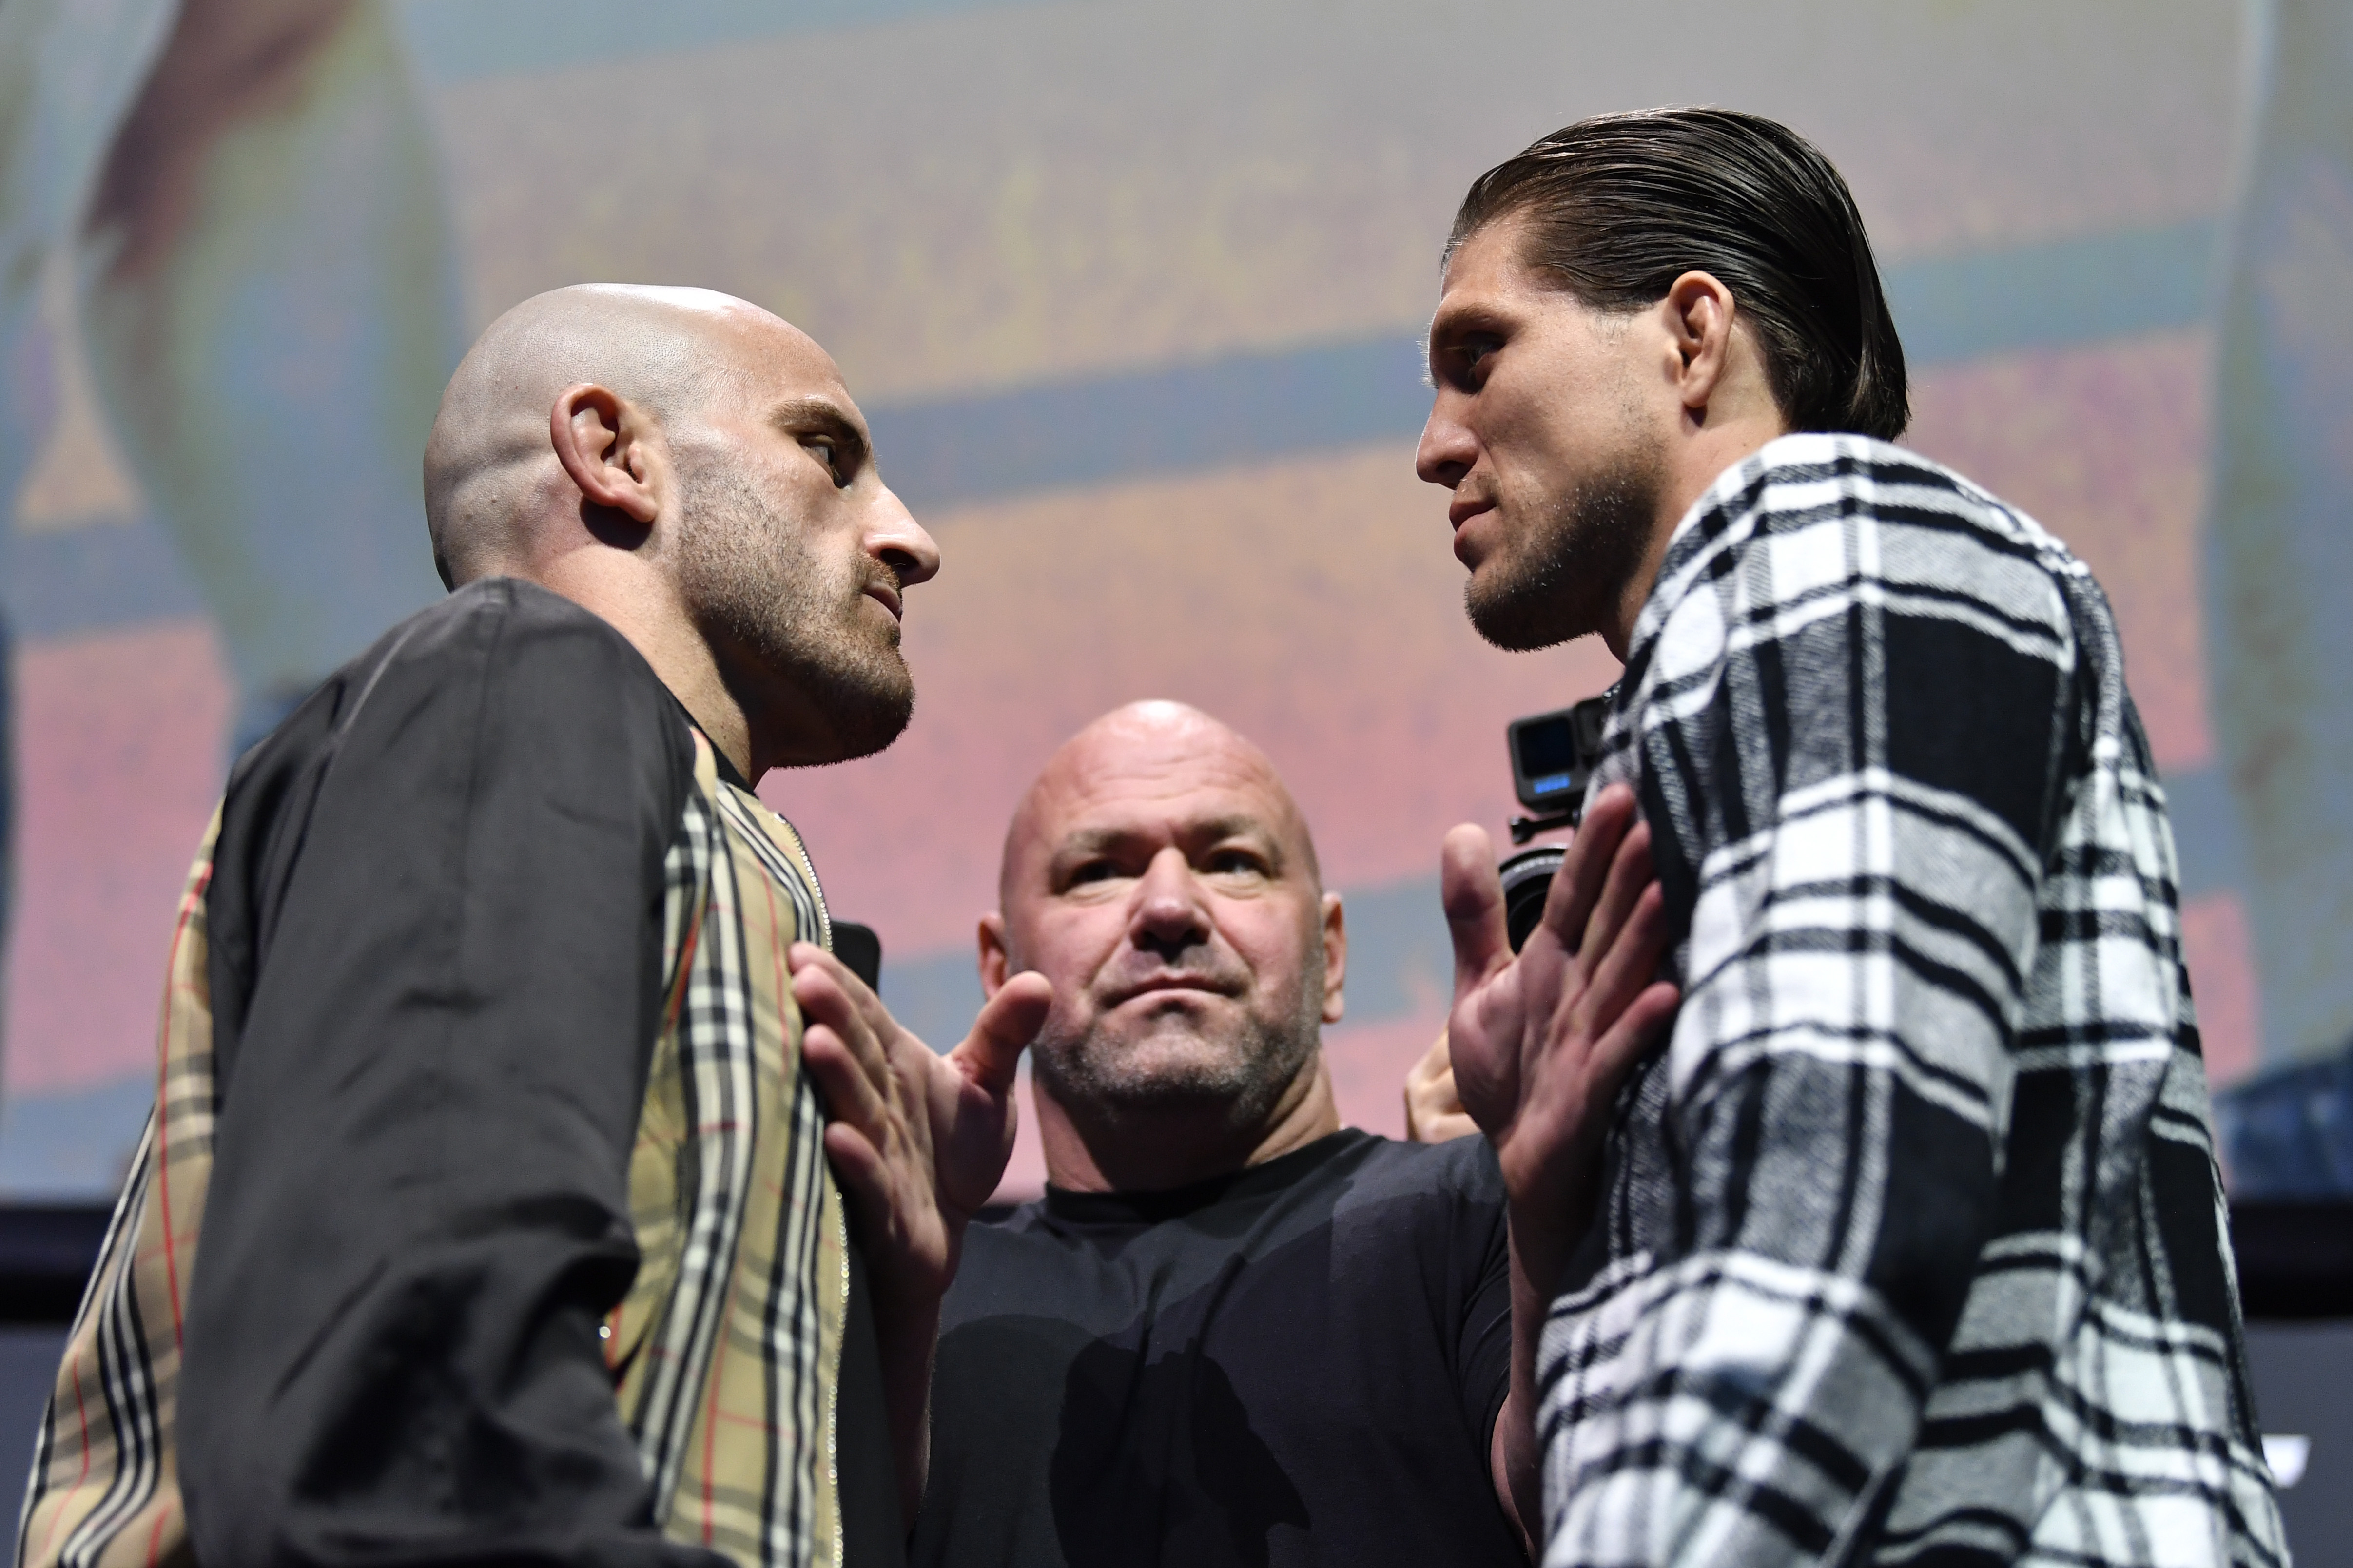 Alexander Volkanovski of Australia and Brian Ortega face off during the UFC 266 Press Conference at Park Theater at Park MGM on September 23, 2021 in Las Vegas, Nevada